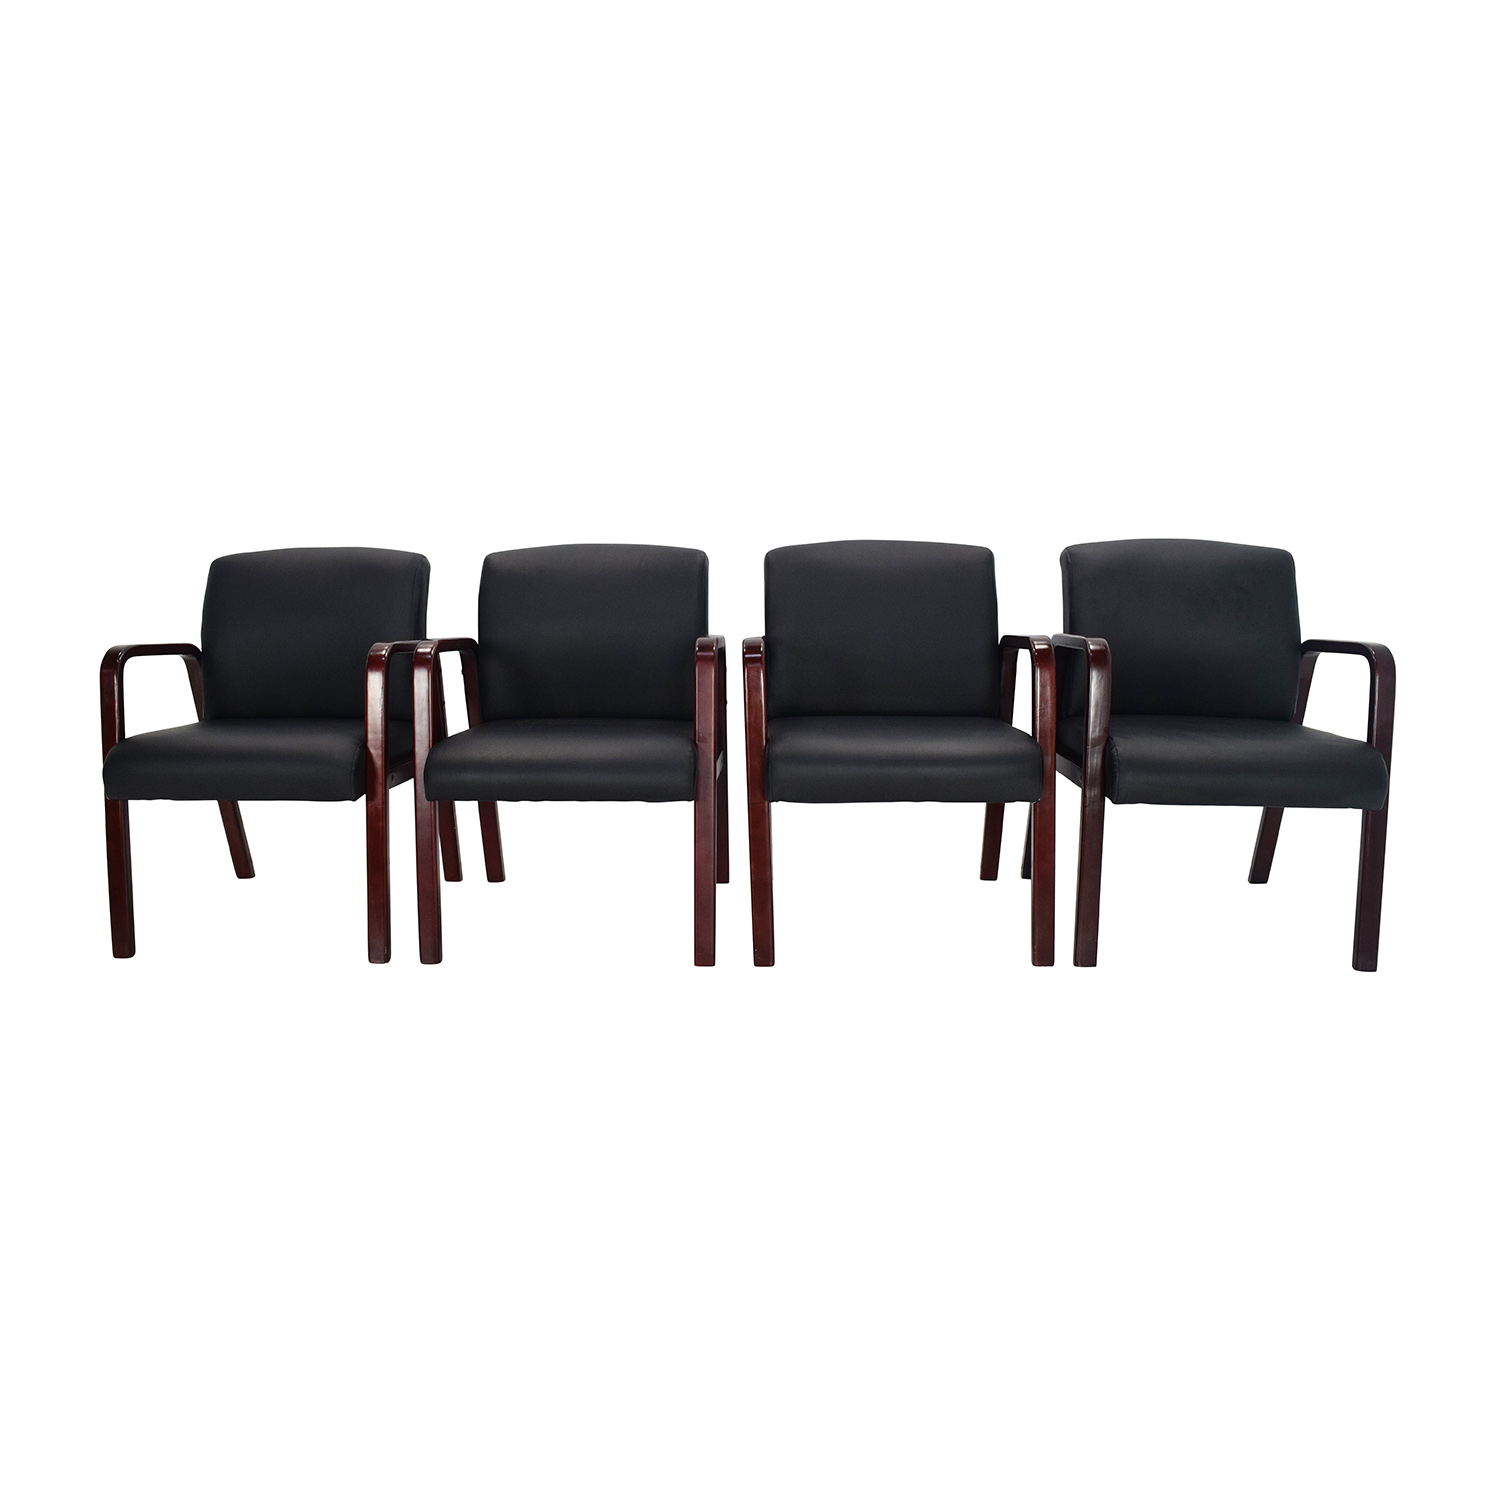 Set of 4 Office Chairs sale